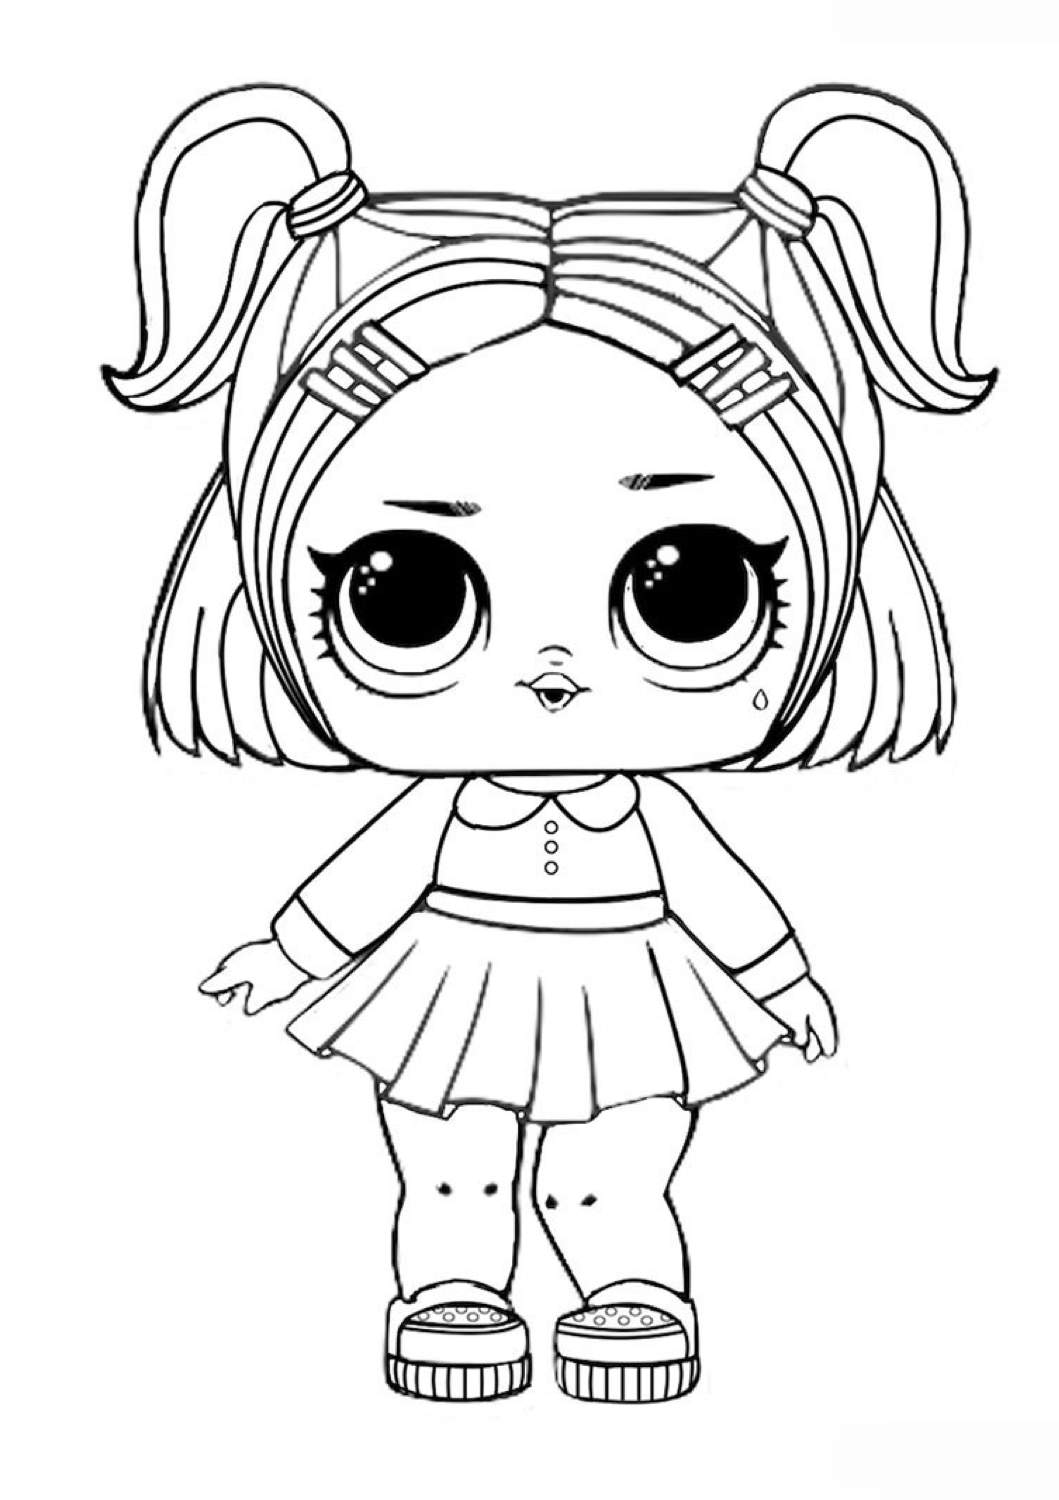 Pin By Julie Brossard On Kids In 2020 Lol Dolls Coloring Pages Cartoon Coloring Pages